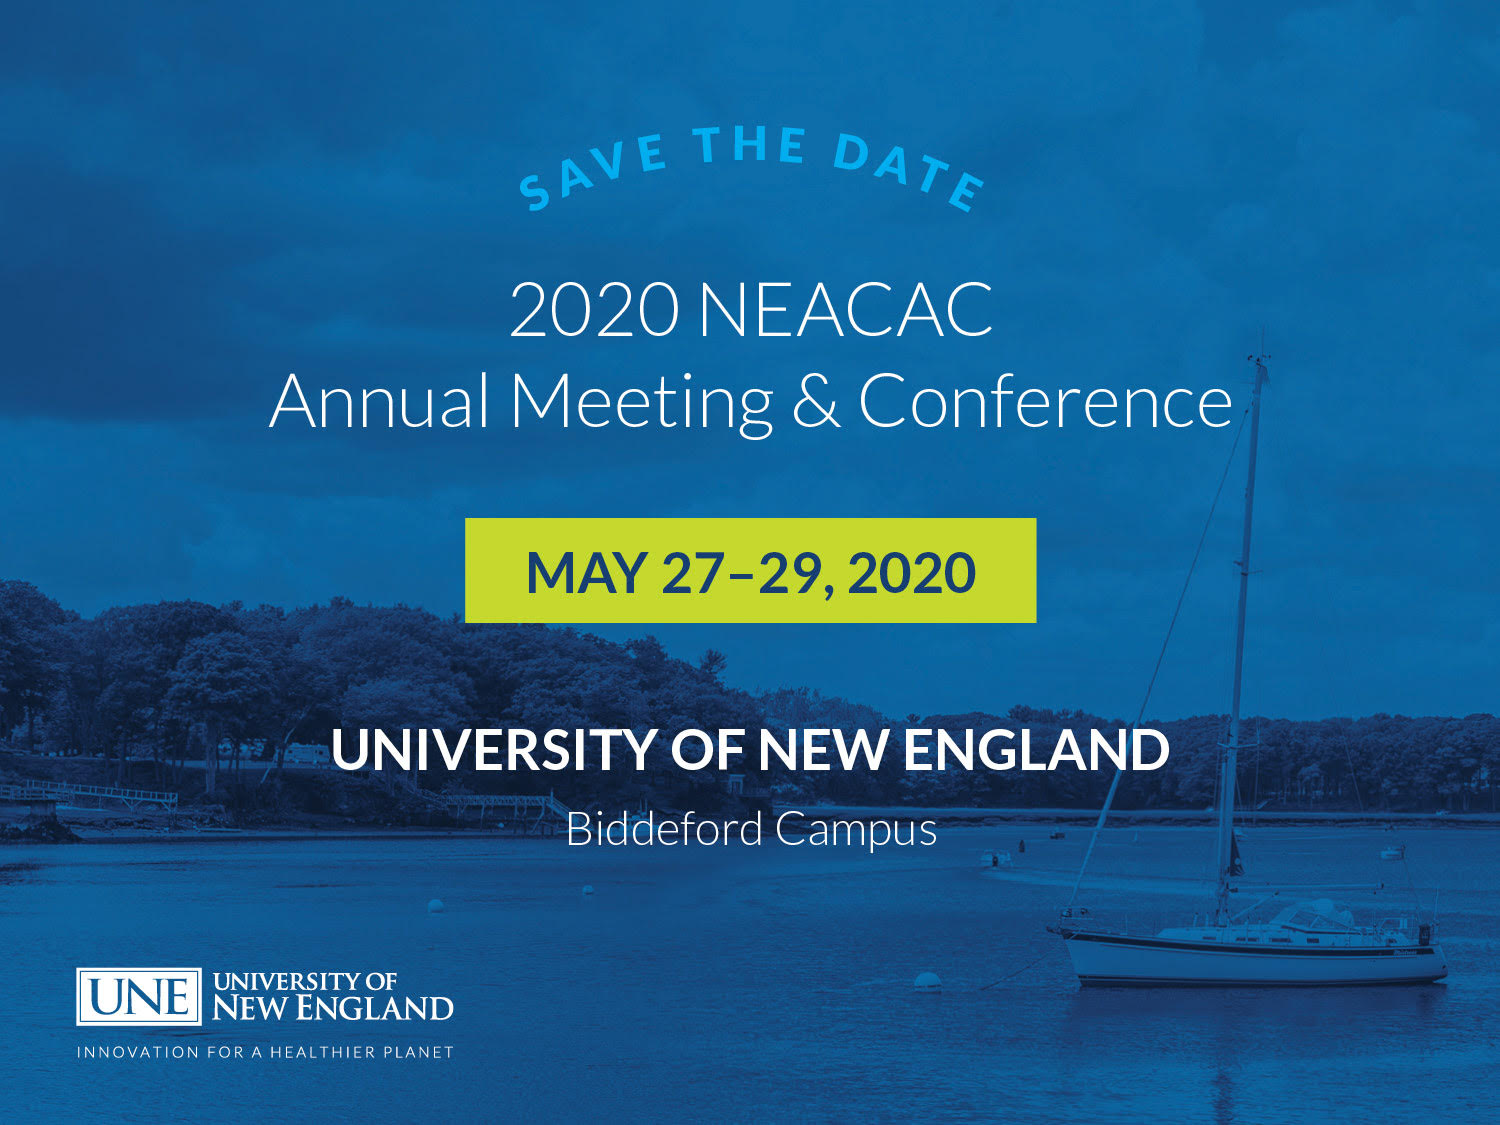 Annual Meeting & Conference 2020